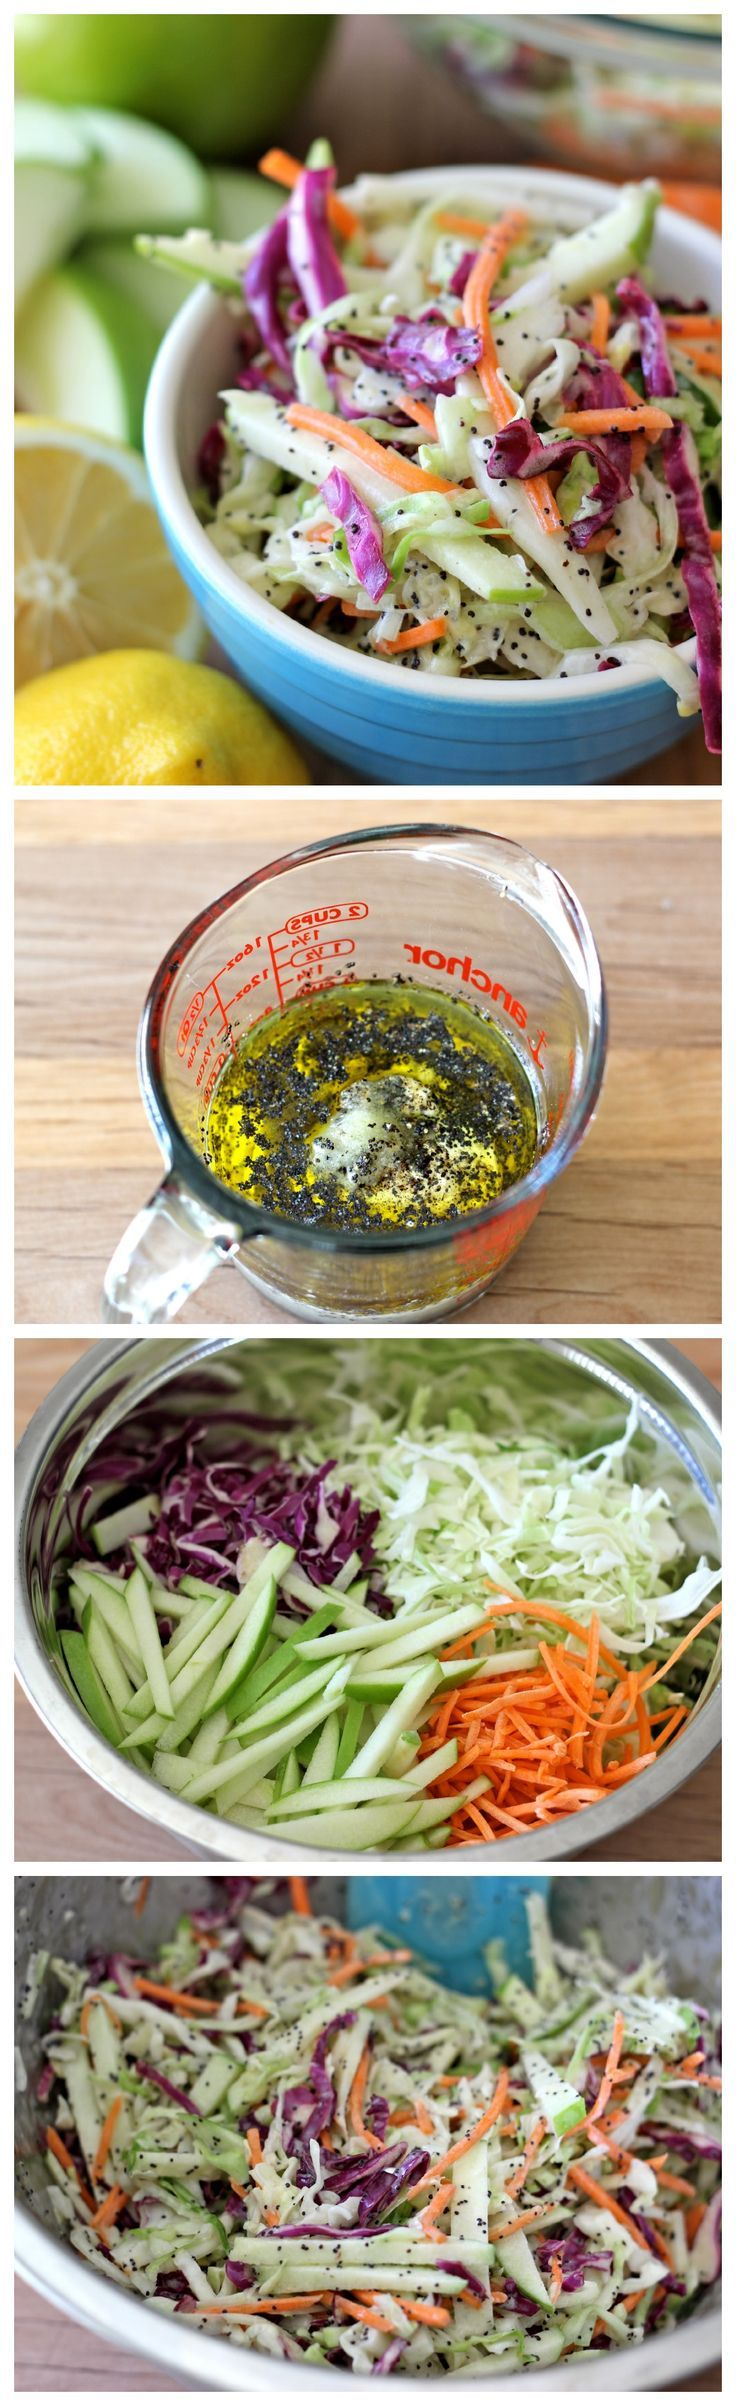 Apple and Poppy Seed Coleslaw - Wonderfully tangy and refreshing, and the perfect side dish to any meal!